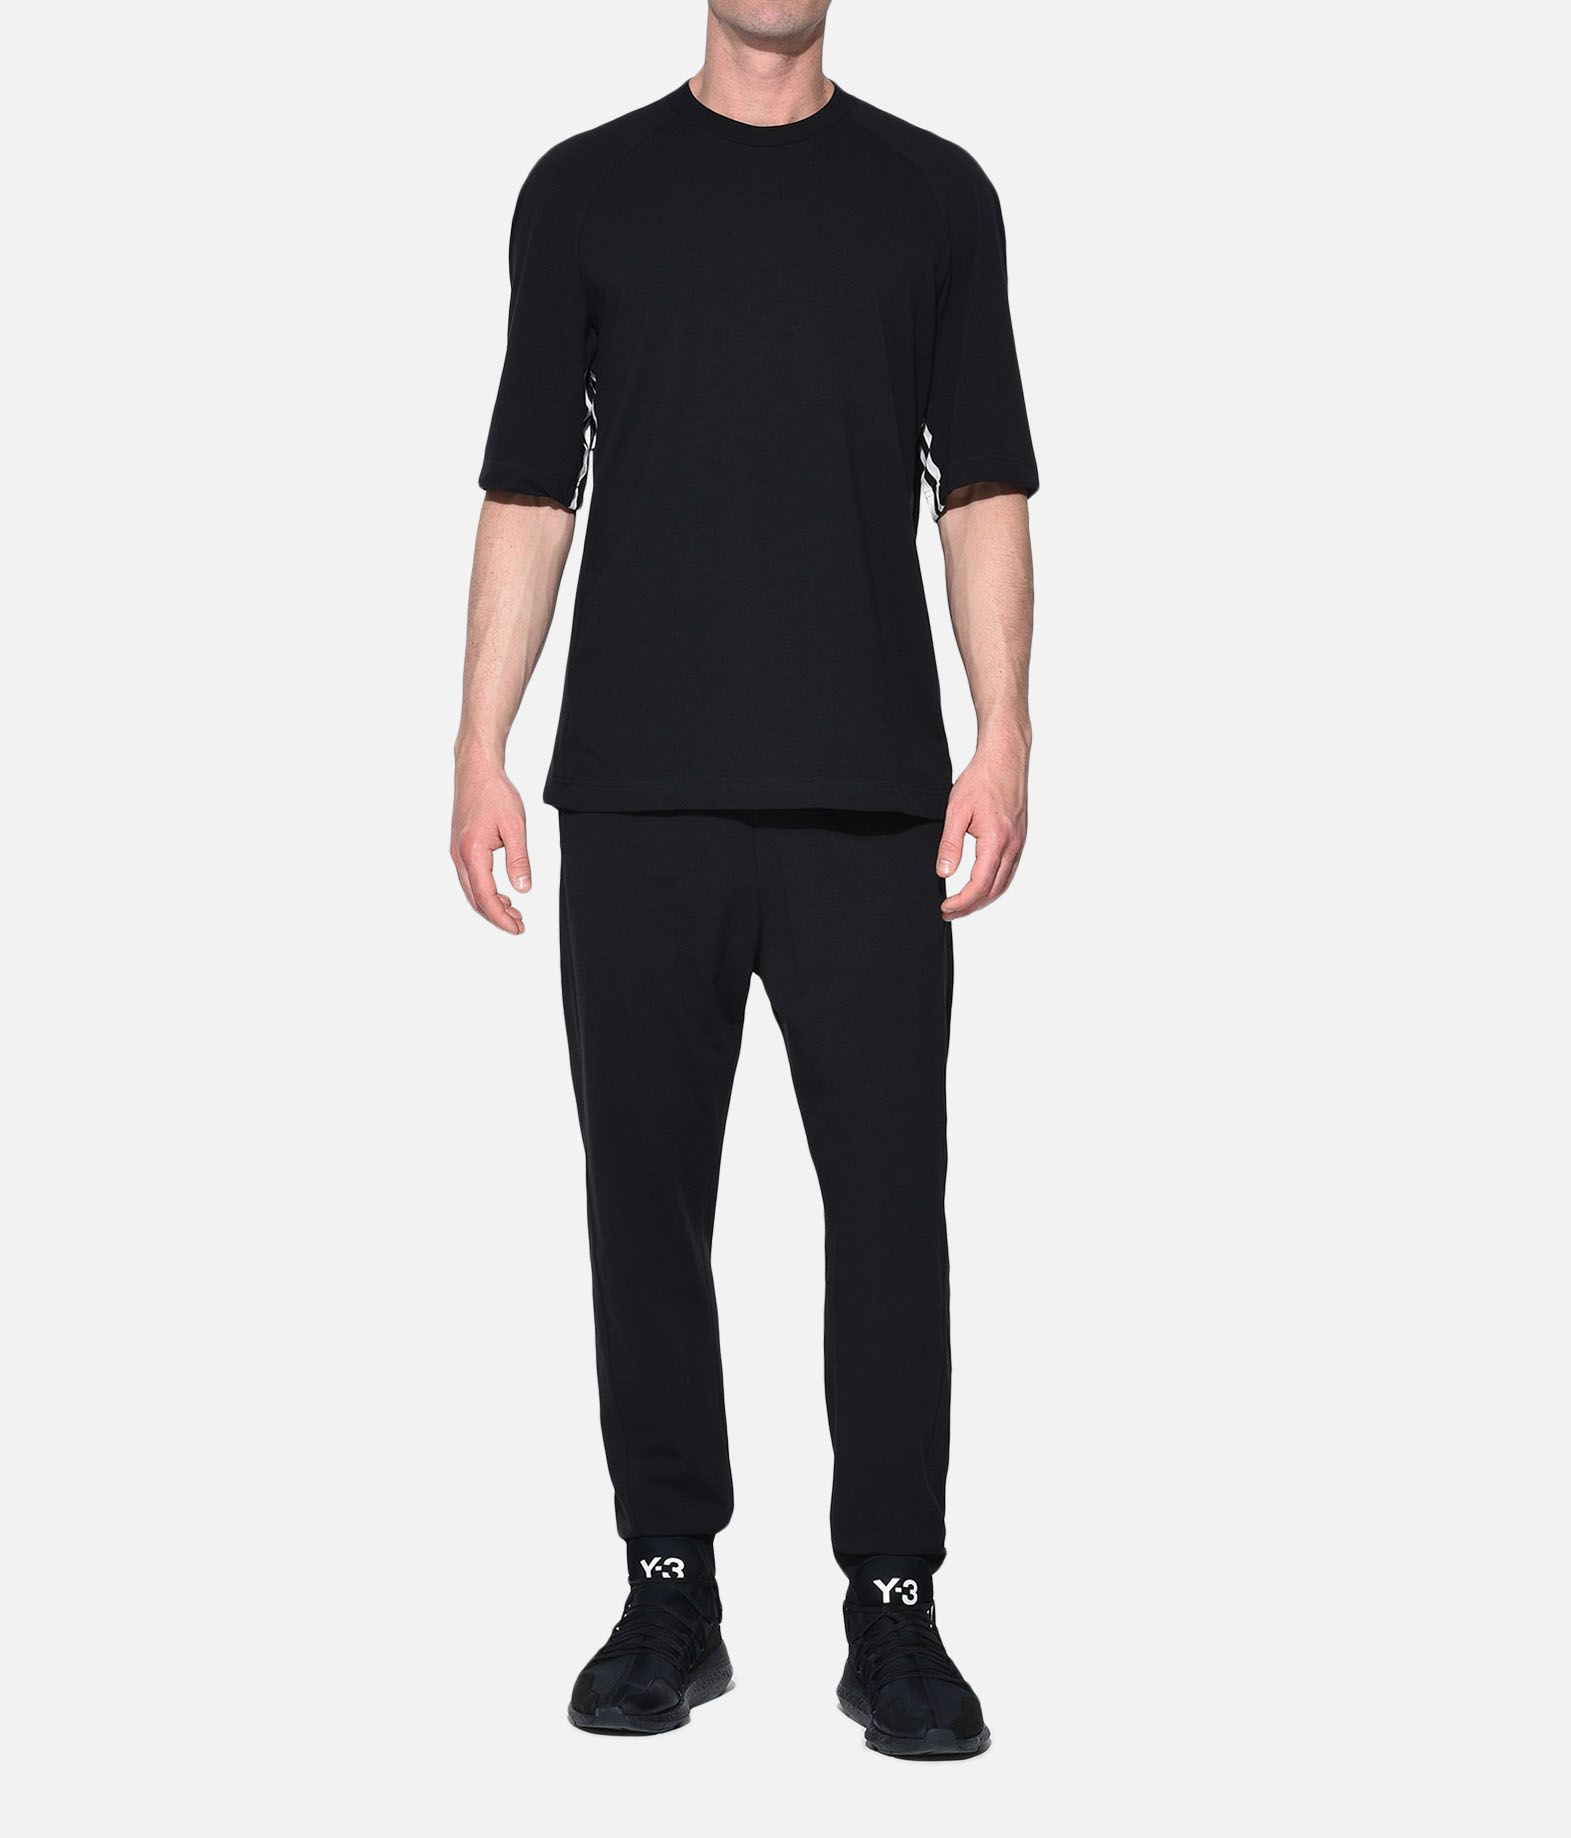 Y-3 Y-3 Logo Long John Pants Leggings Man a